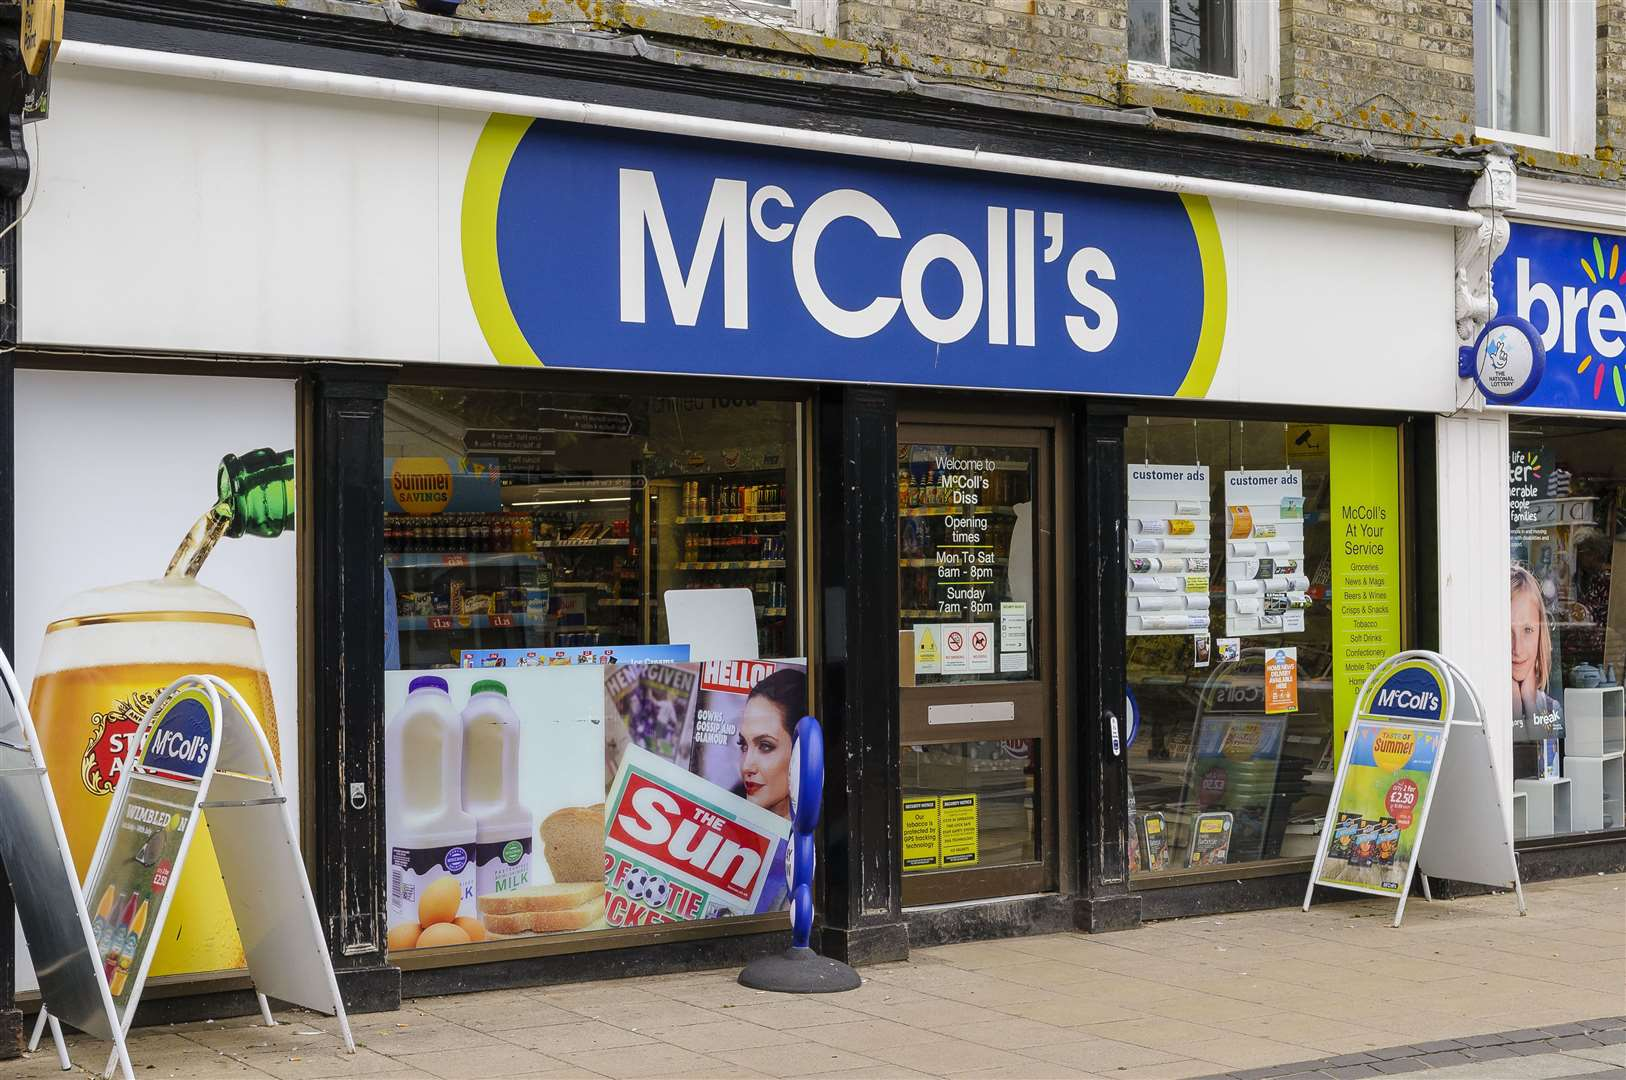 McColl's in Diss is due to close. Picture by Mark Bullimore.